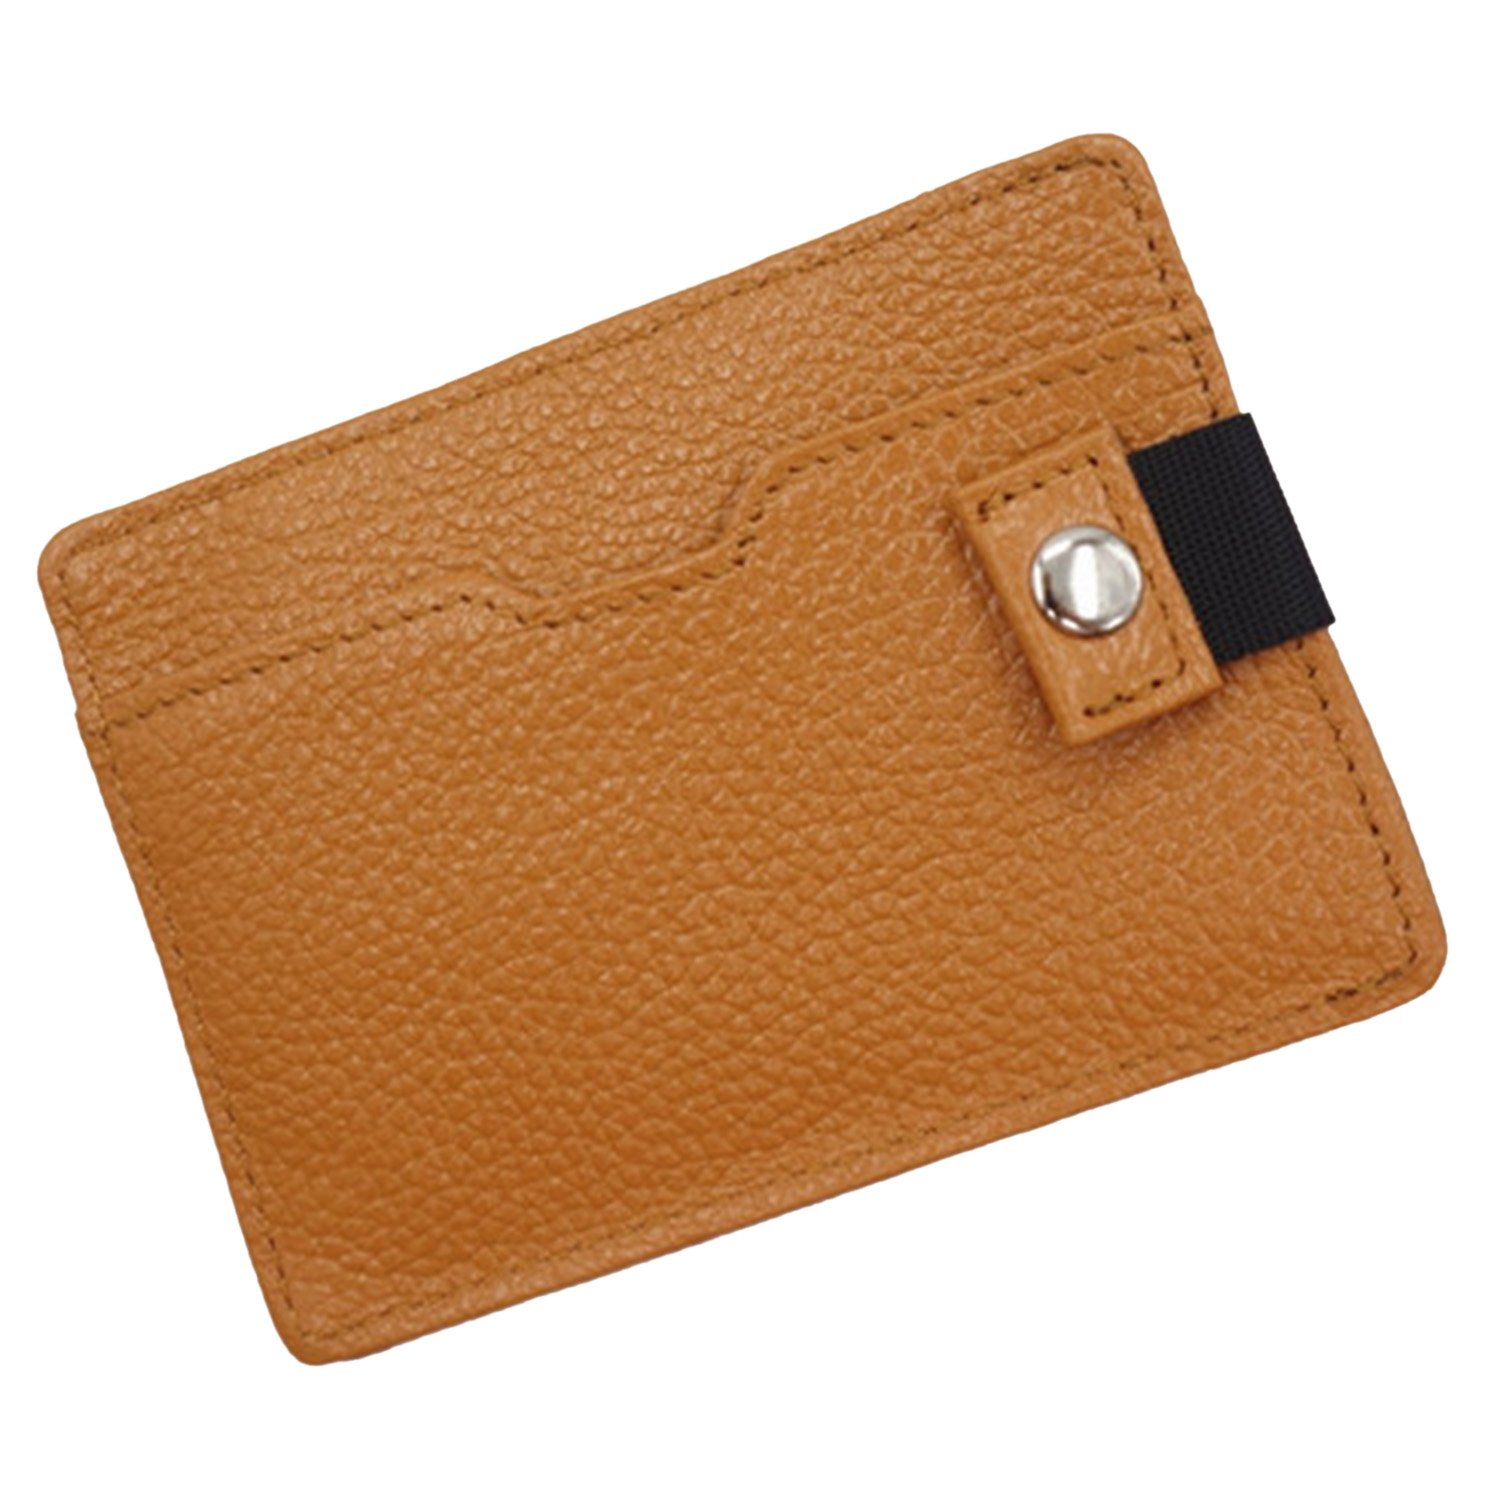 Sasairy Leather RFID Blocking Credit Card Wallet Mini Purse with Security Button